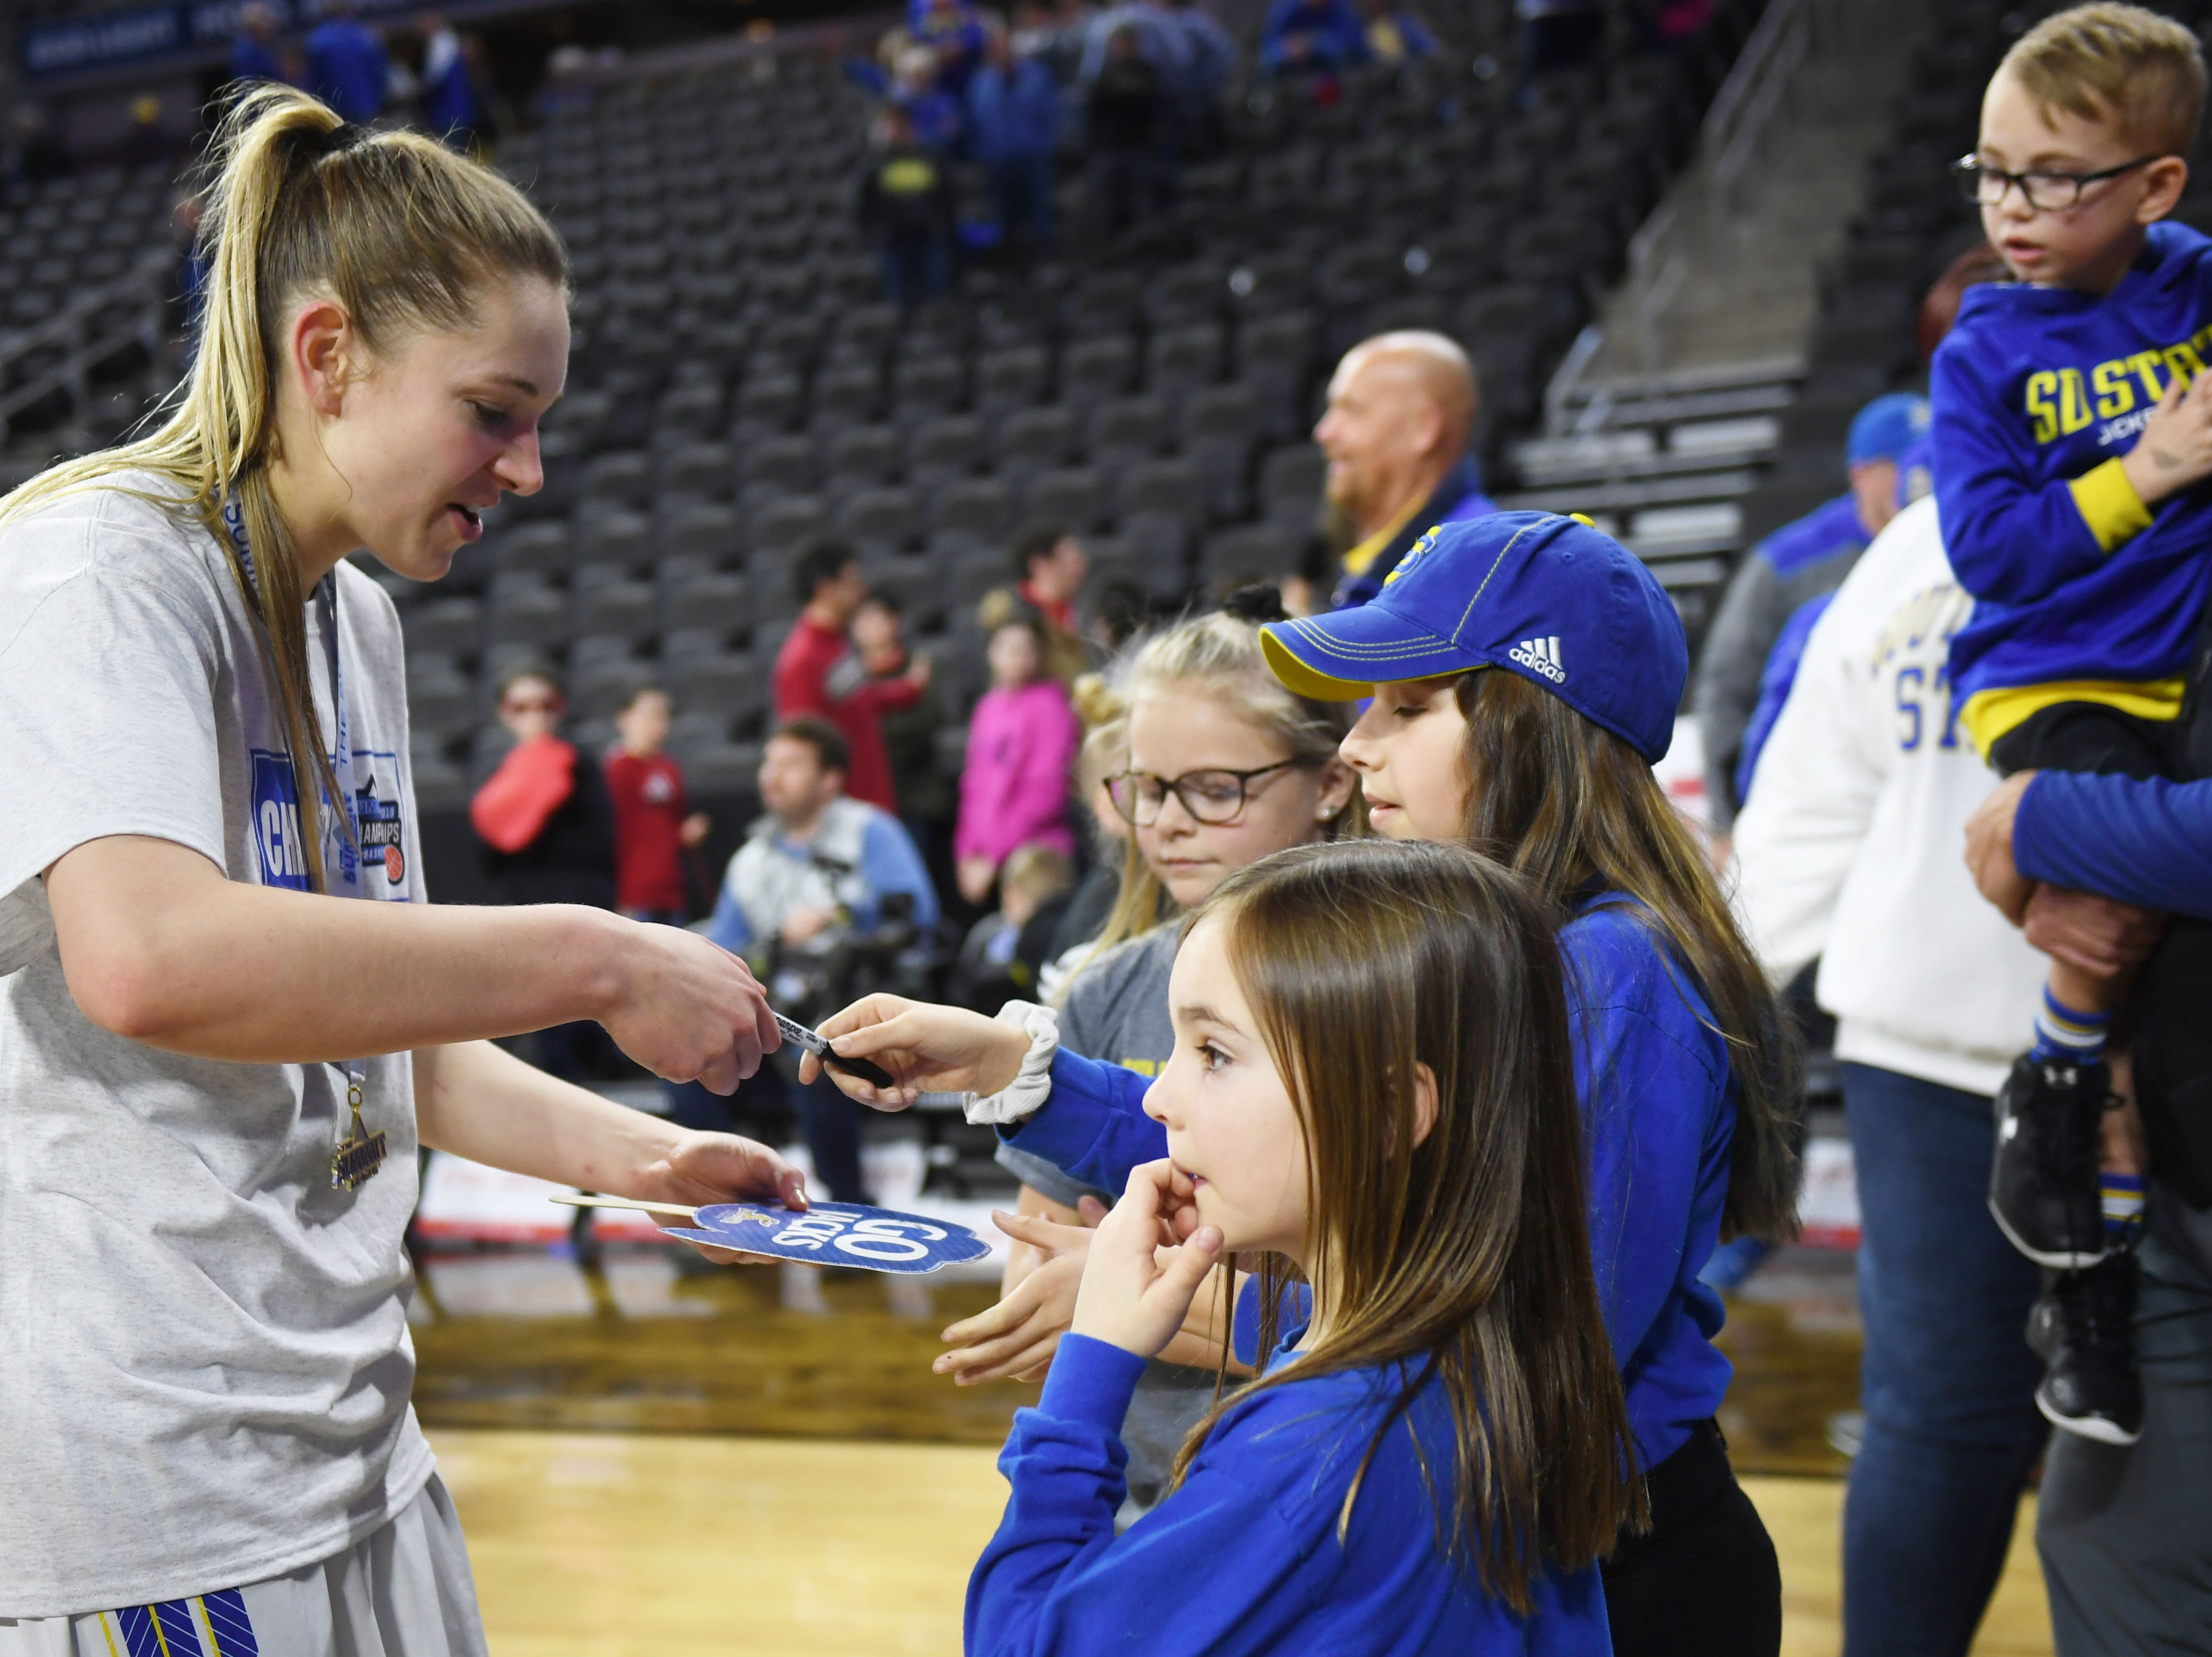 SDSU's Tagyn Larson signs autographs for young fans after their win against USD Tuesday, March 12, in the Summit League women's championship at the Denny Sanford Premier Center in Sioux Falls.